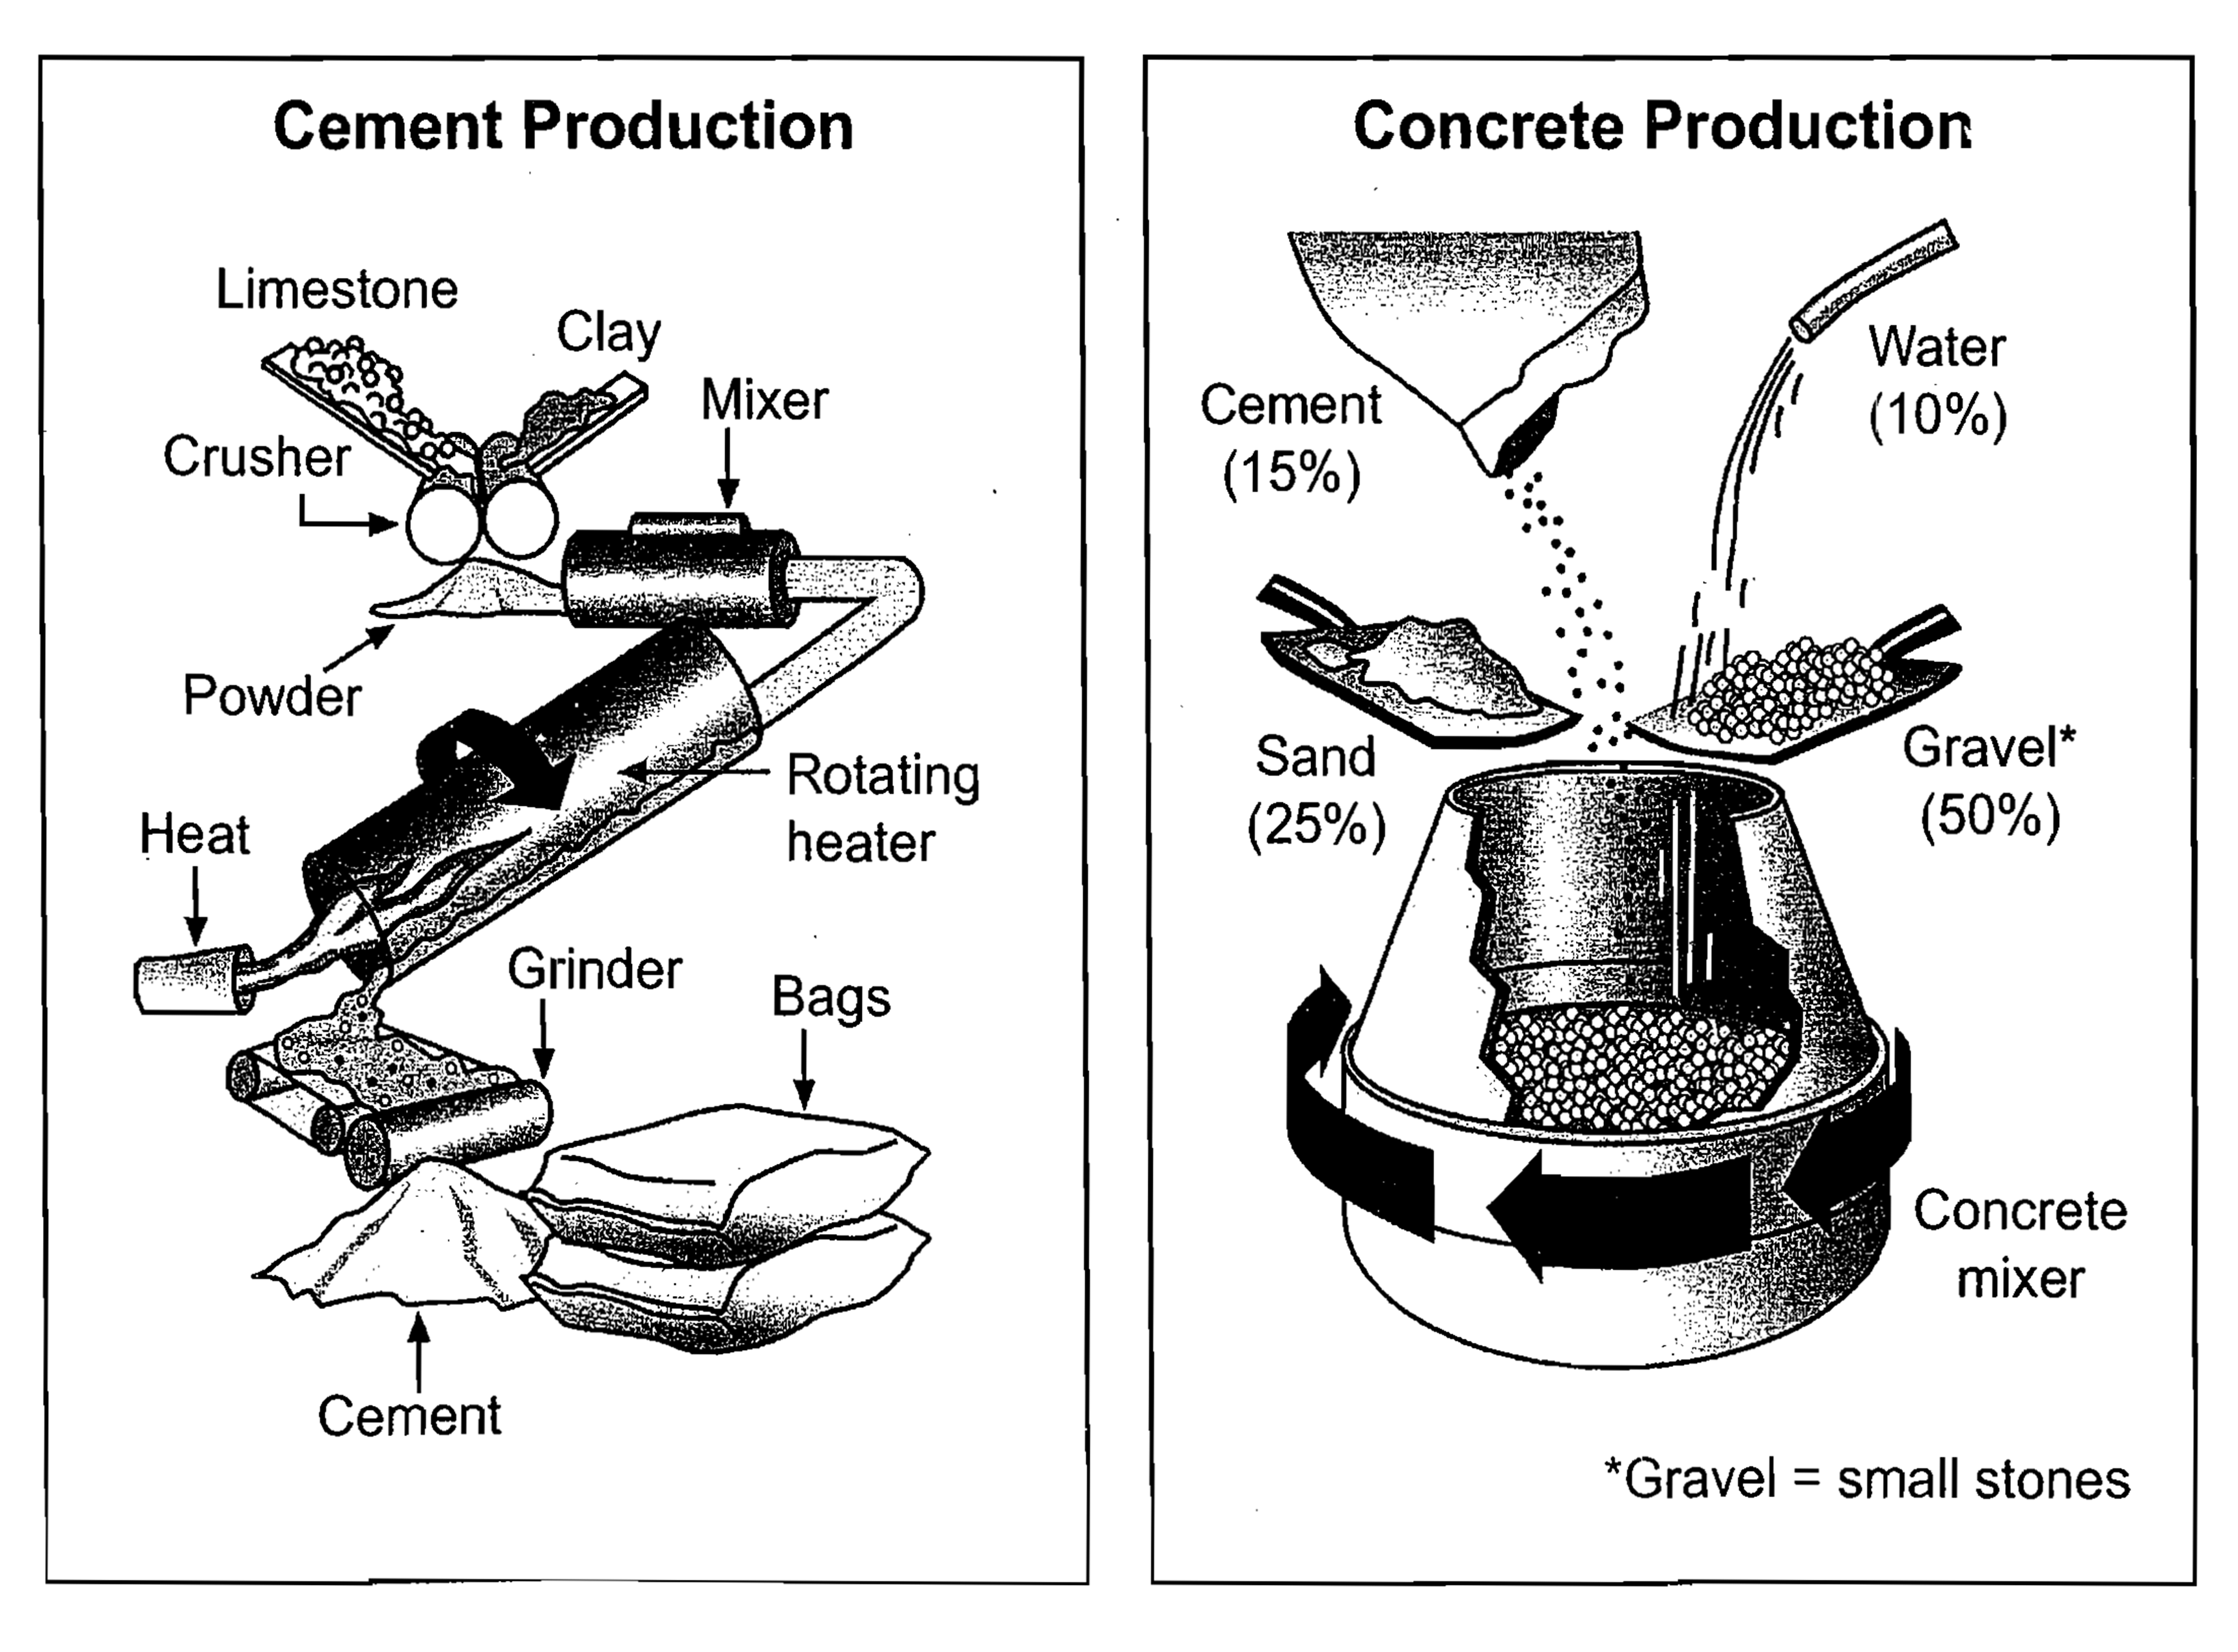 The Diagram Below Shows The Stages And Equipment Used In